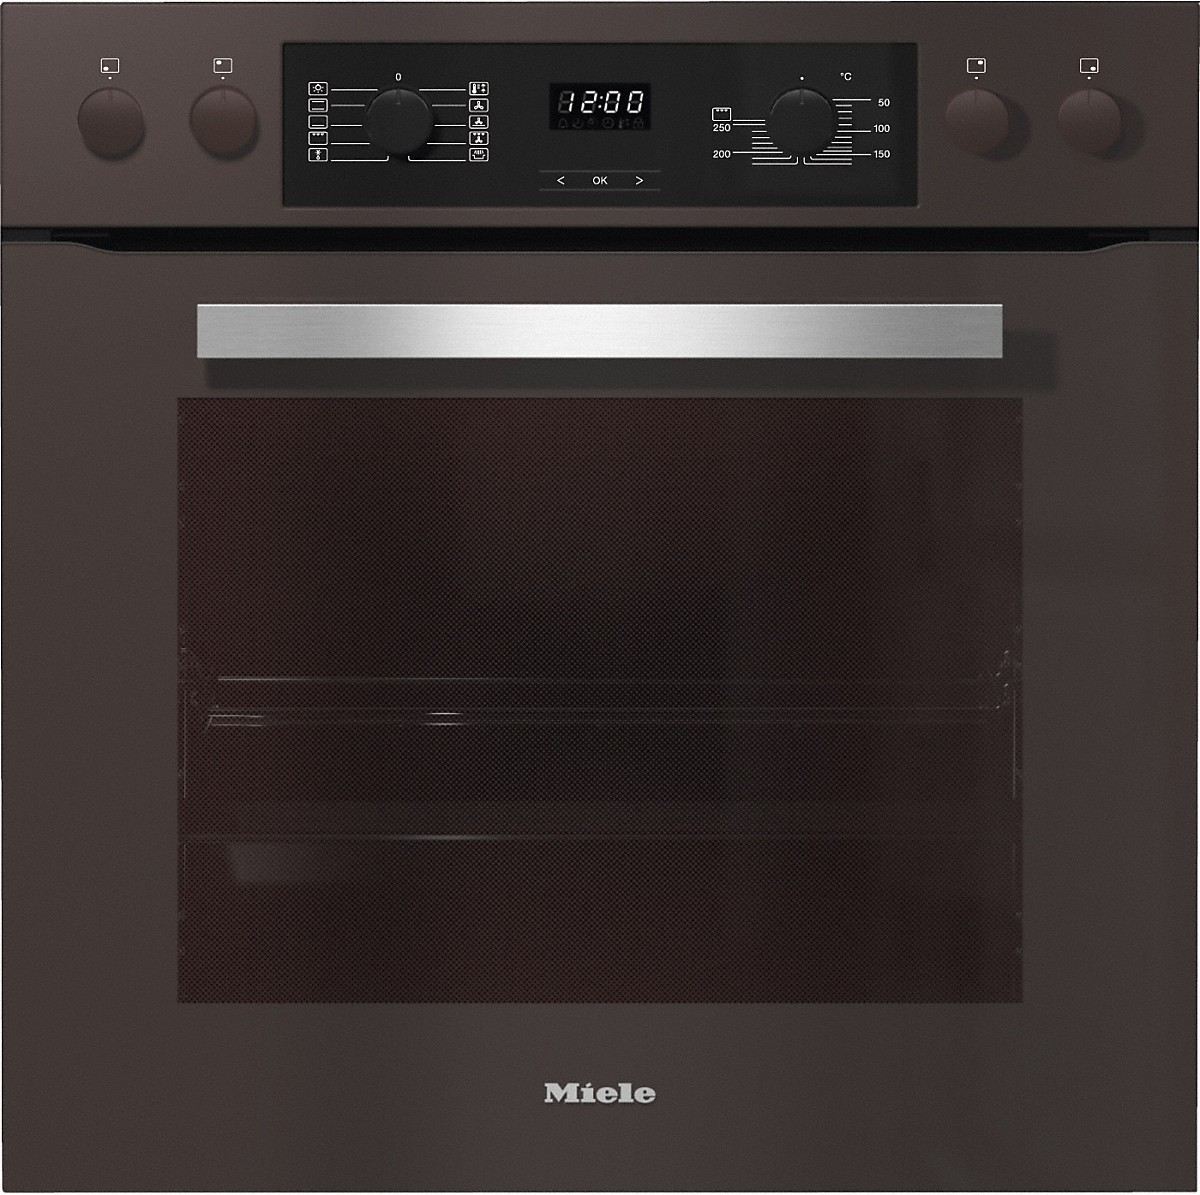 miele herdset h 2265 e active havannabraun km6013 vs elektro. Black Bedroom Furniture Sets. Home Design Ideas